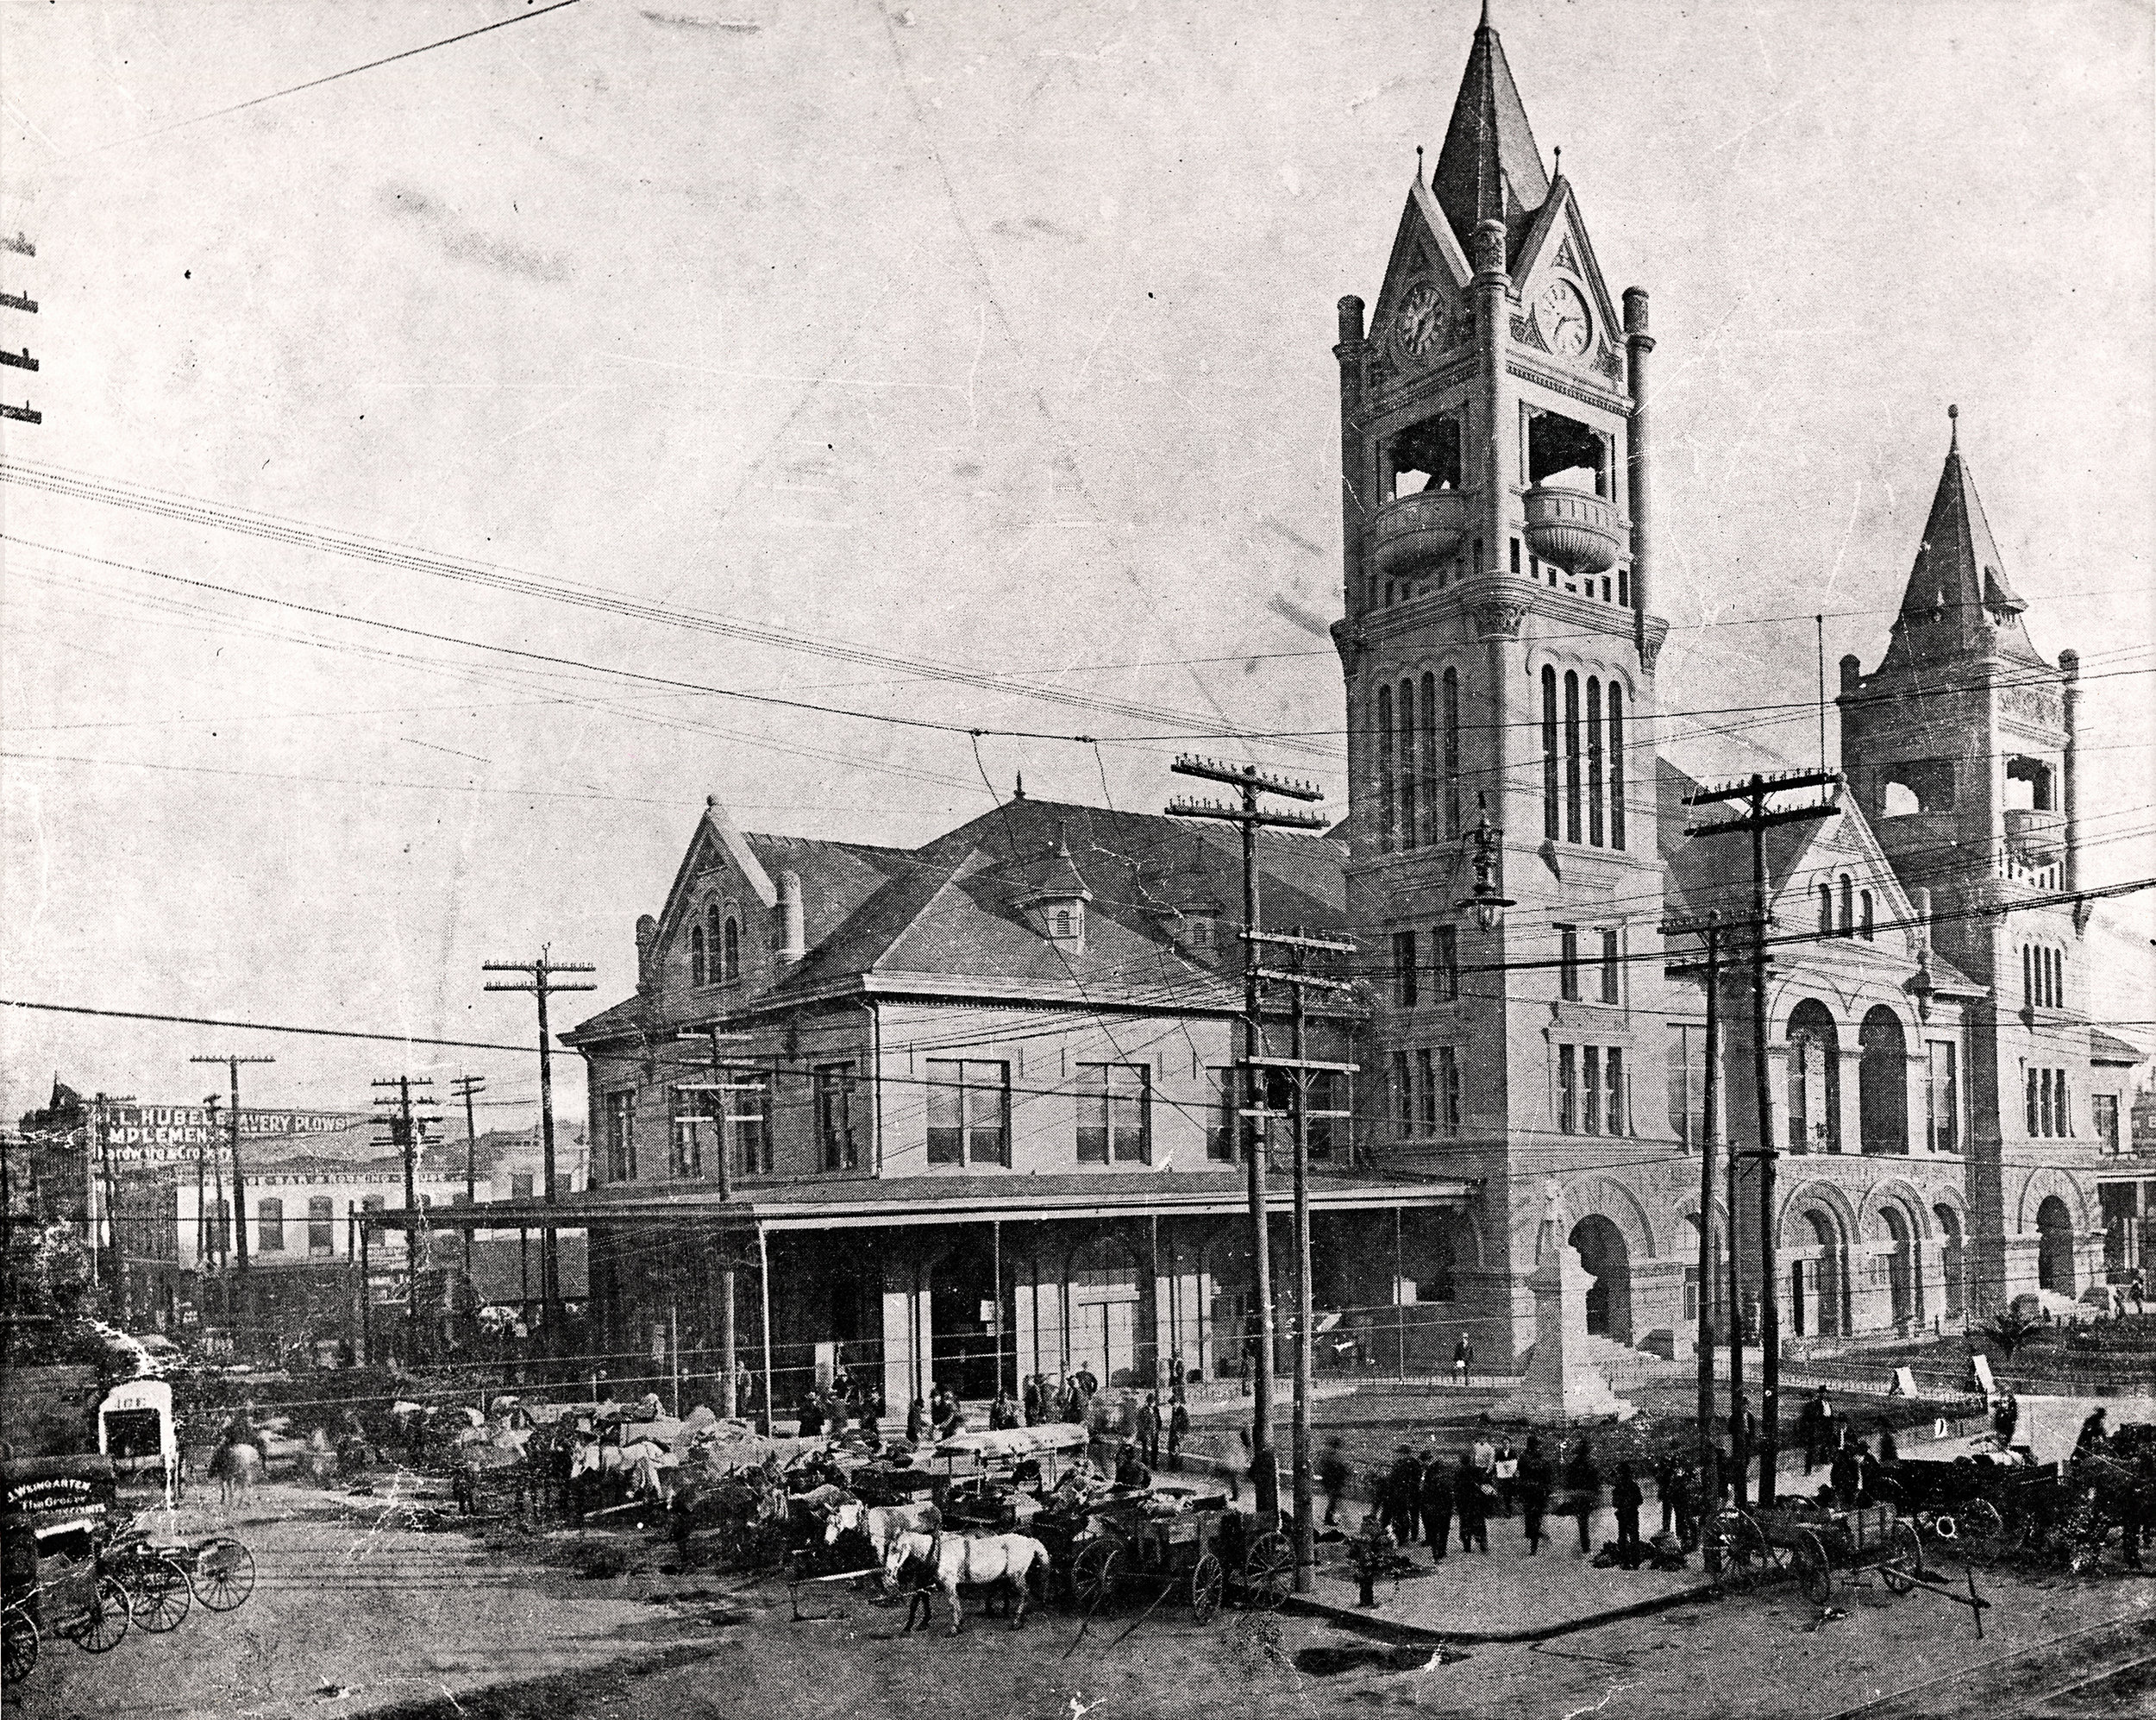 The Baker-Meyer Building was constructed facing the City Hall and Market Tower, shown here in 1904.  City Hall and Market House, Image 5.  1904. Special Collections, University of Houston Libraries.